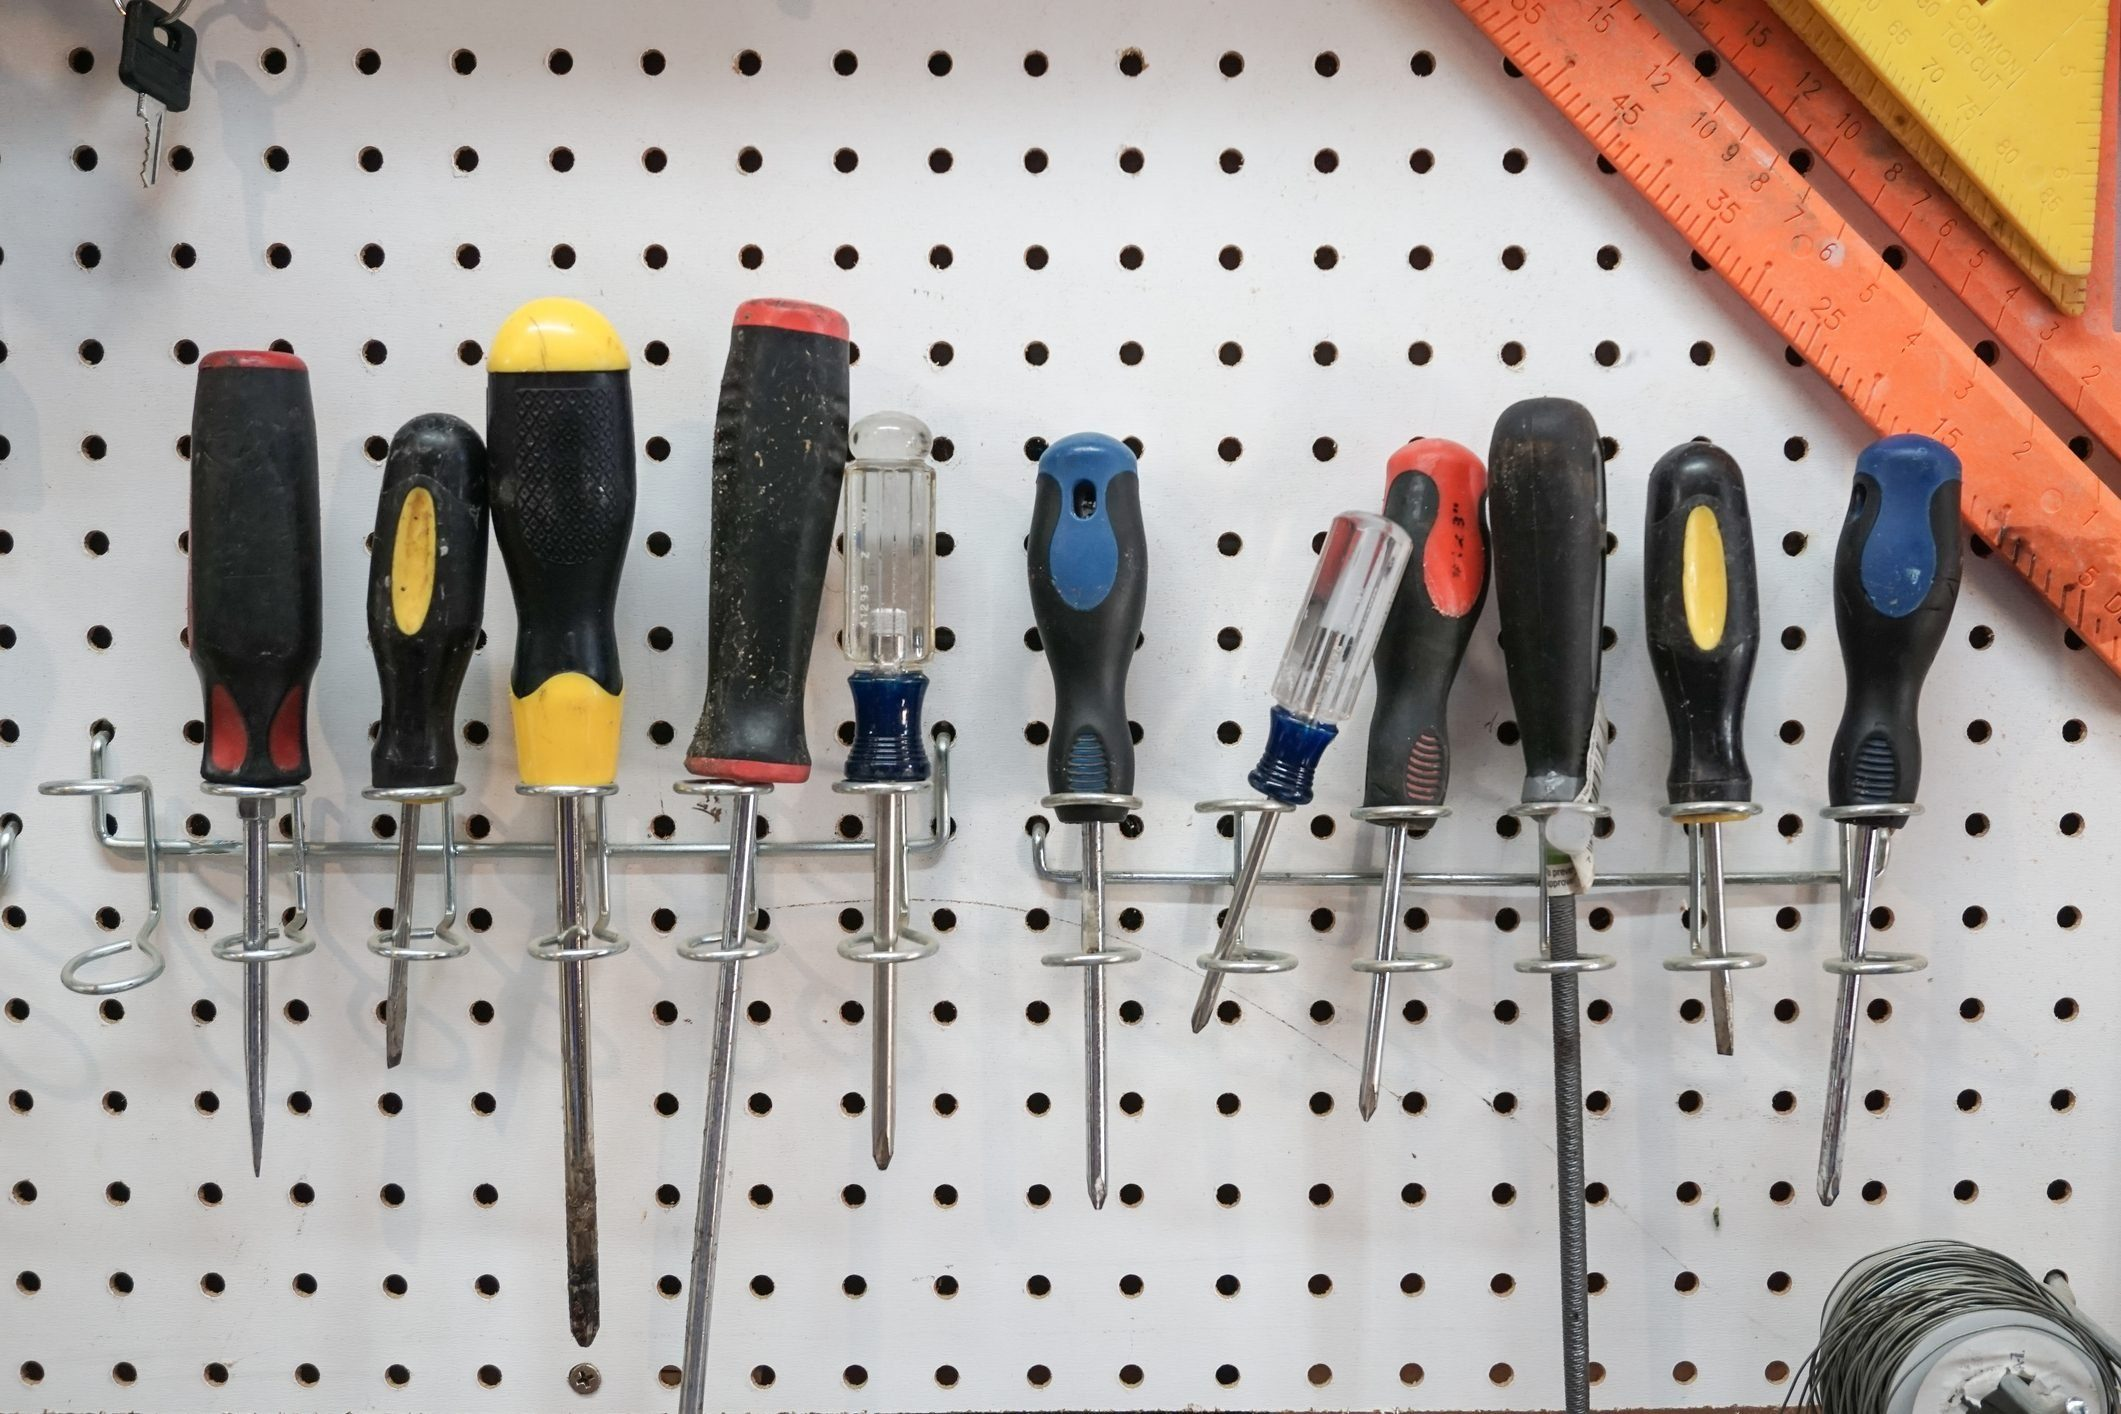 A collection of screwdrivers hanging from a pegboard